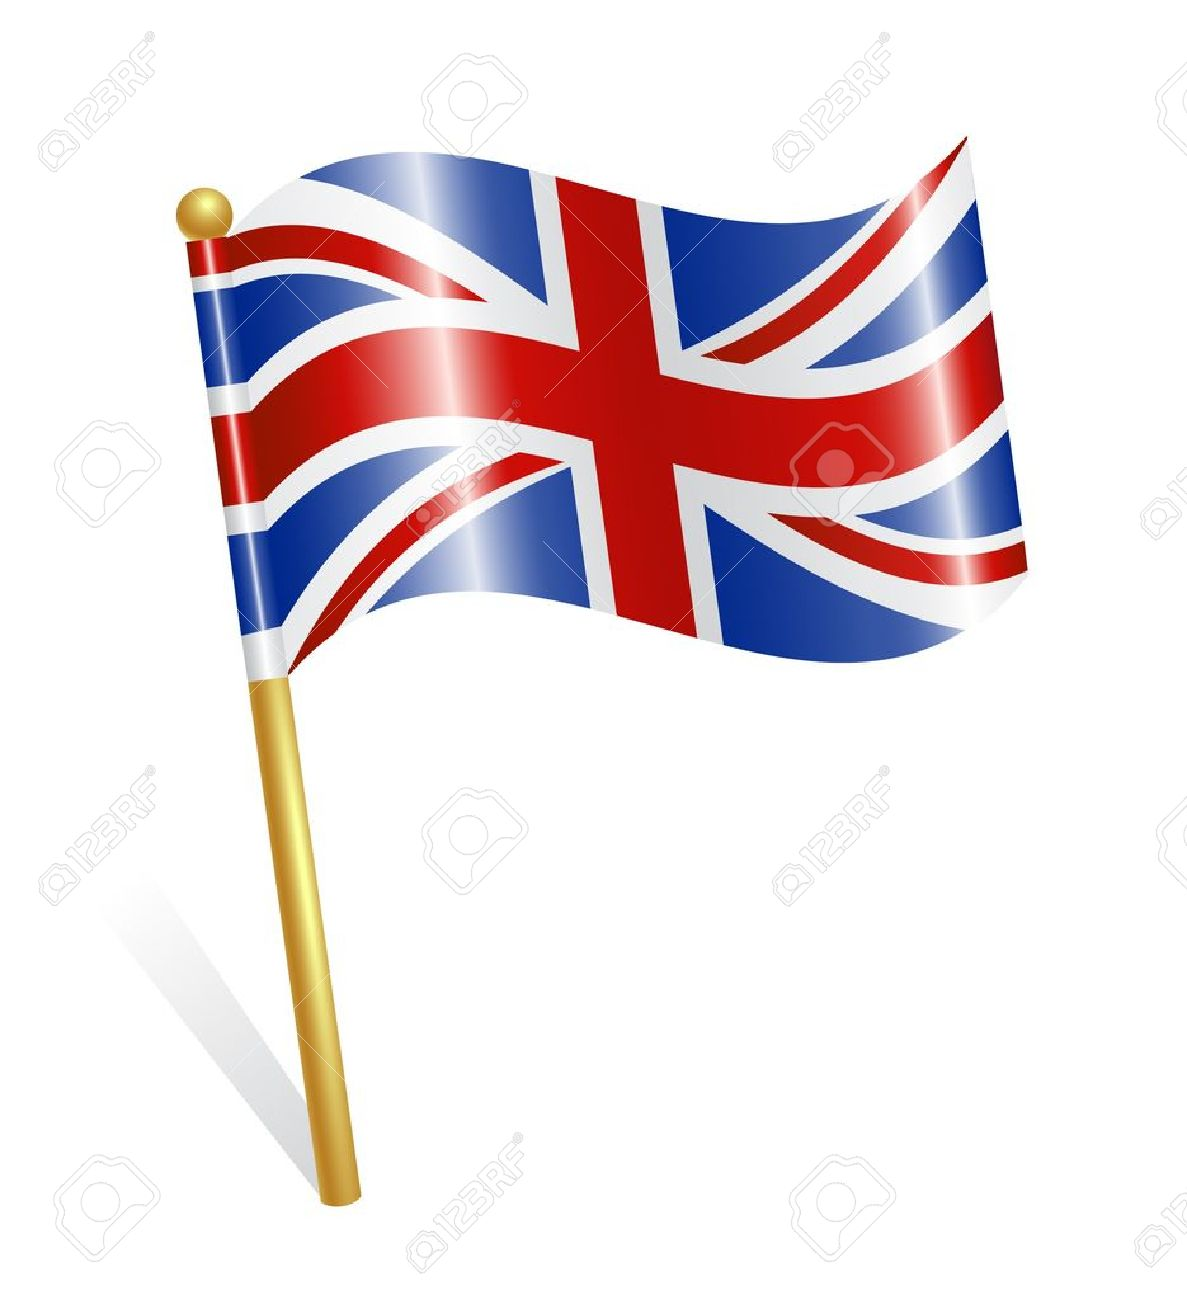 Union Flag Clipart.